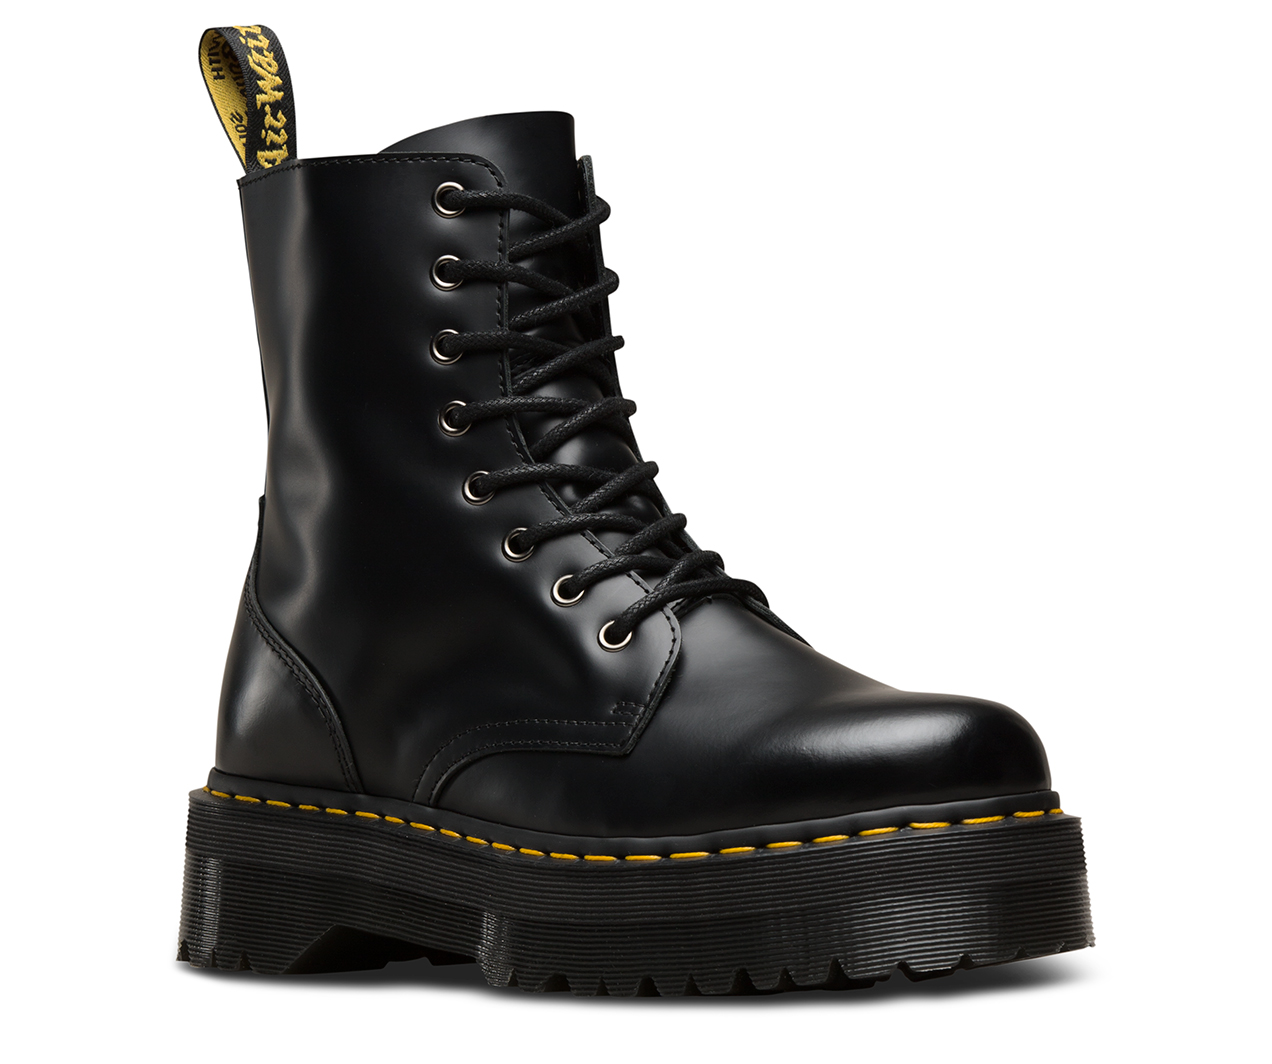 Dr Martens Womens Black Boot Boots Jadon 8 Eye Polished Smooth